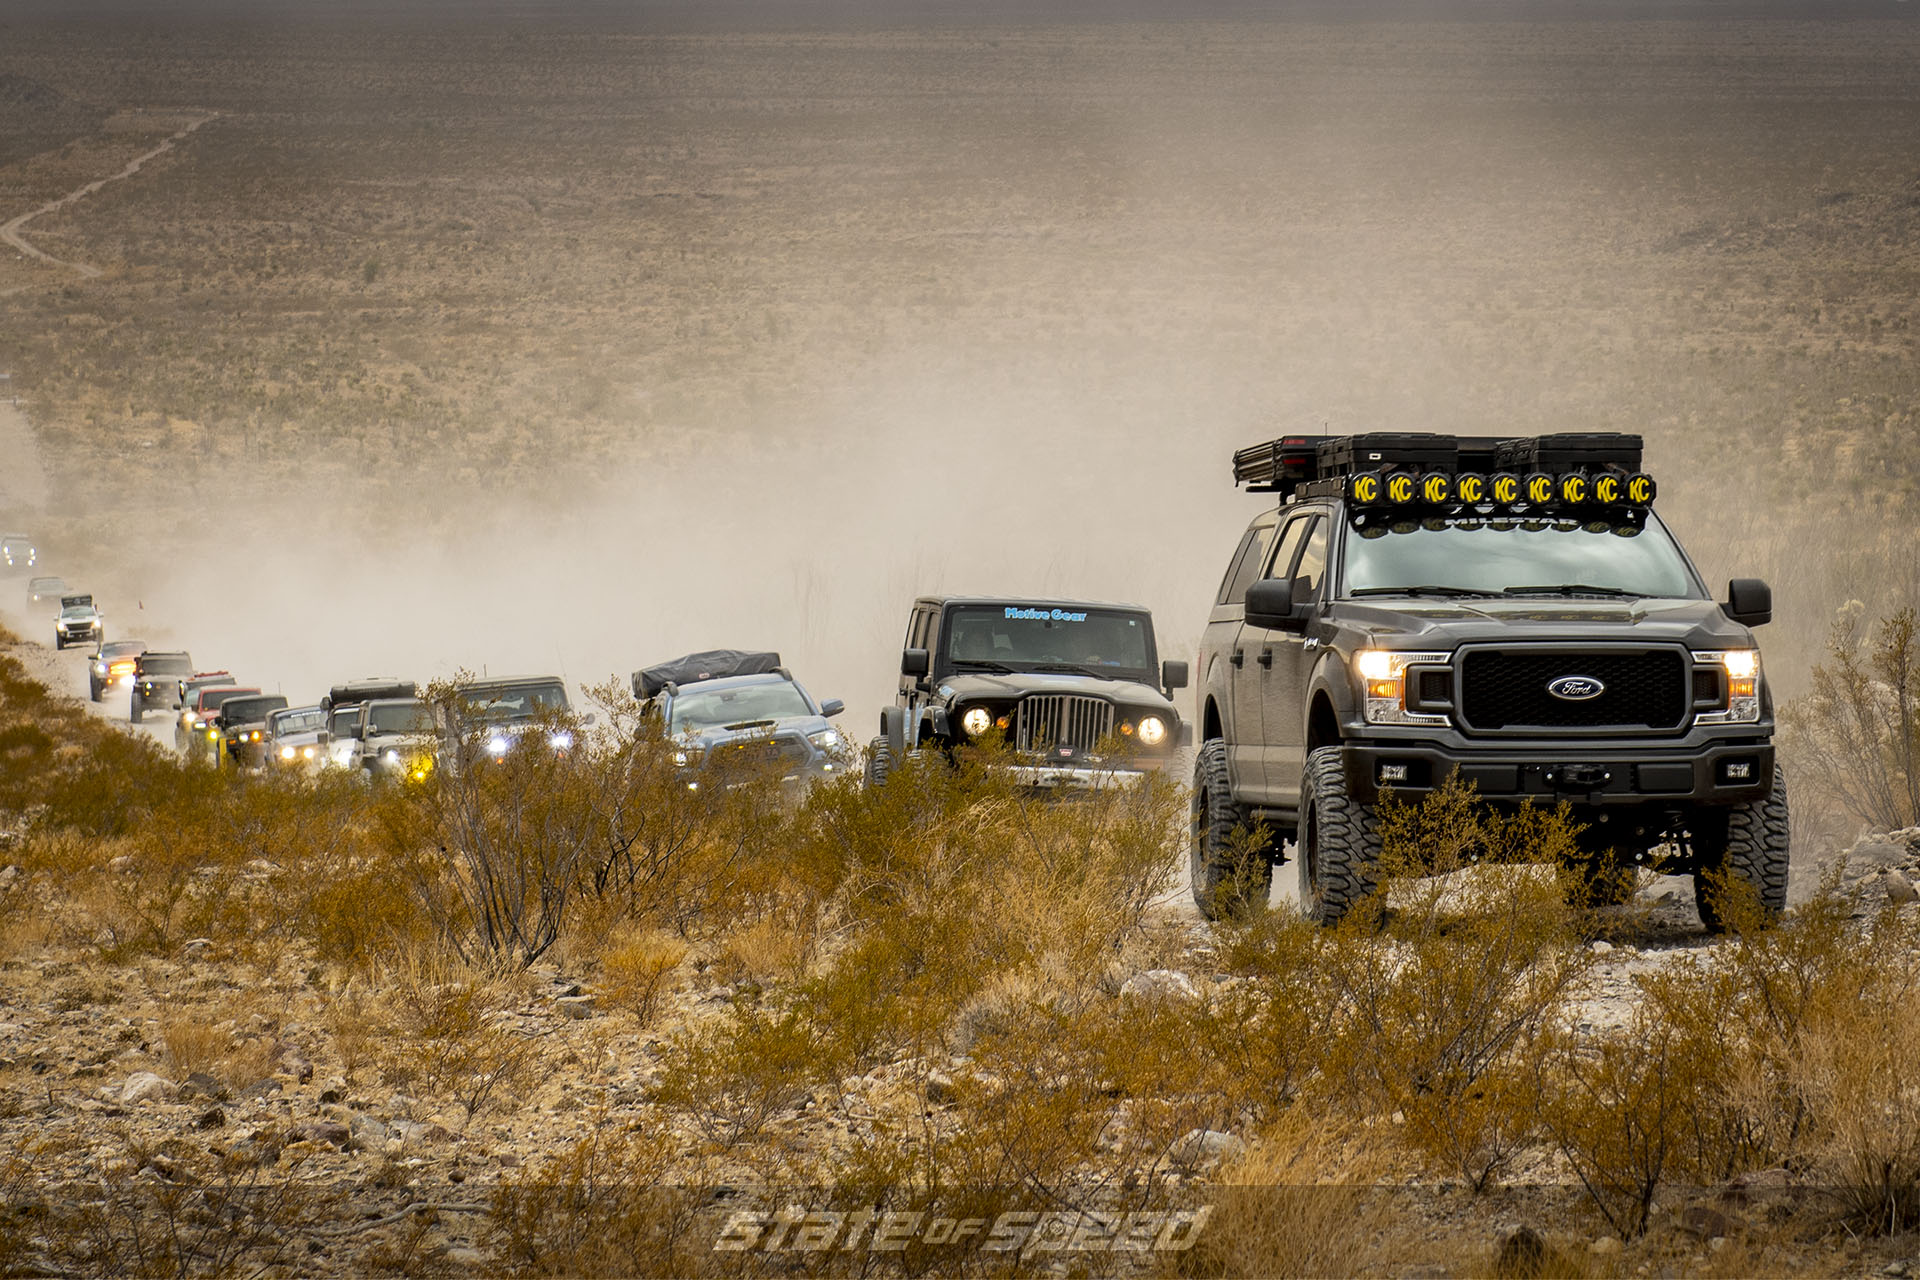 Milestar Tires XPDN1 Ford F-250 and Jeeps at Mojave